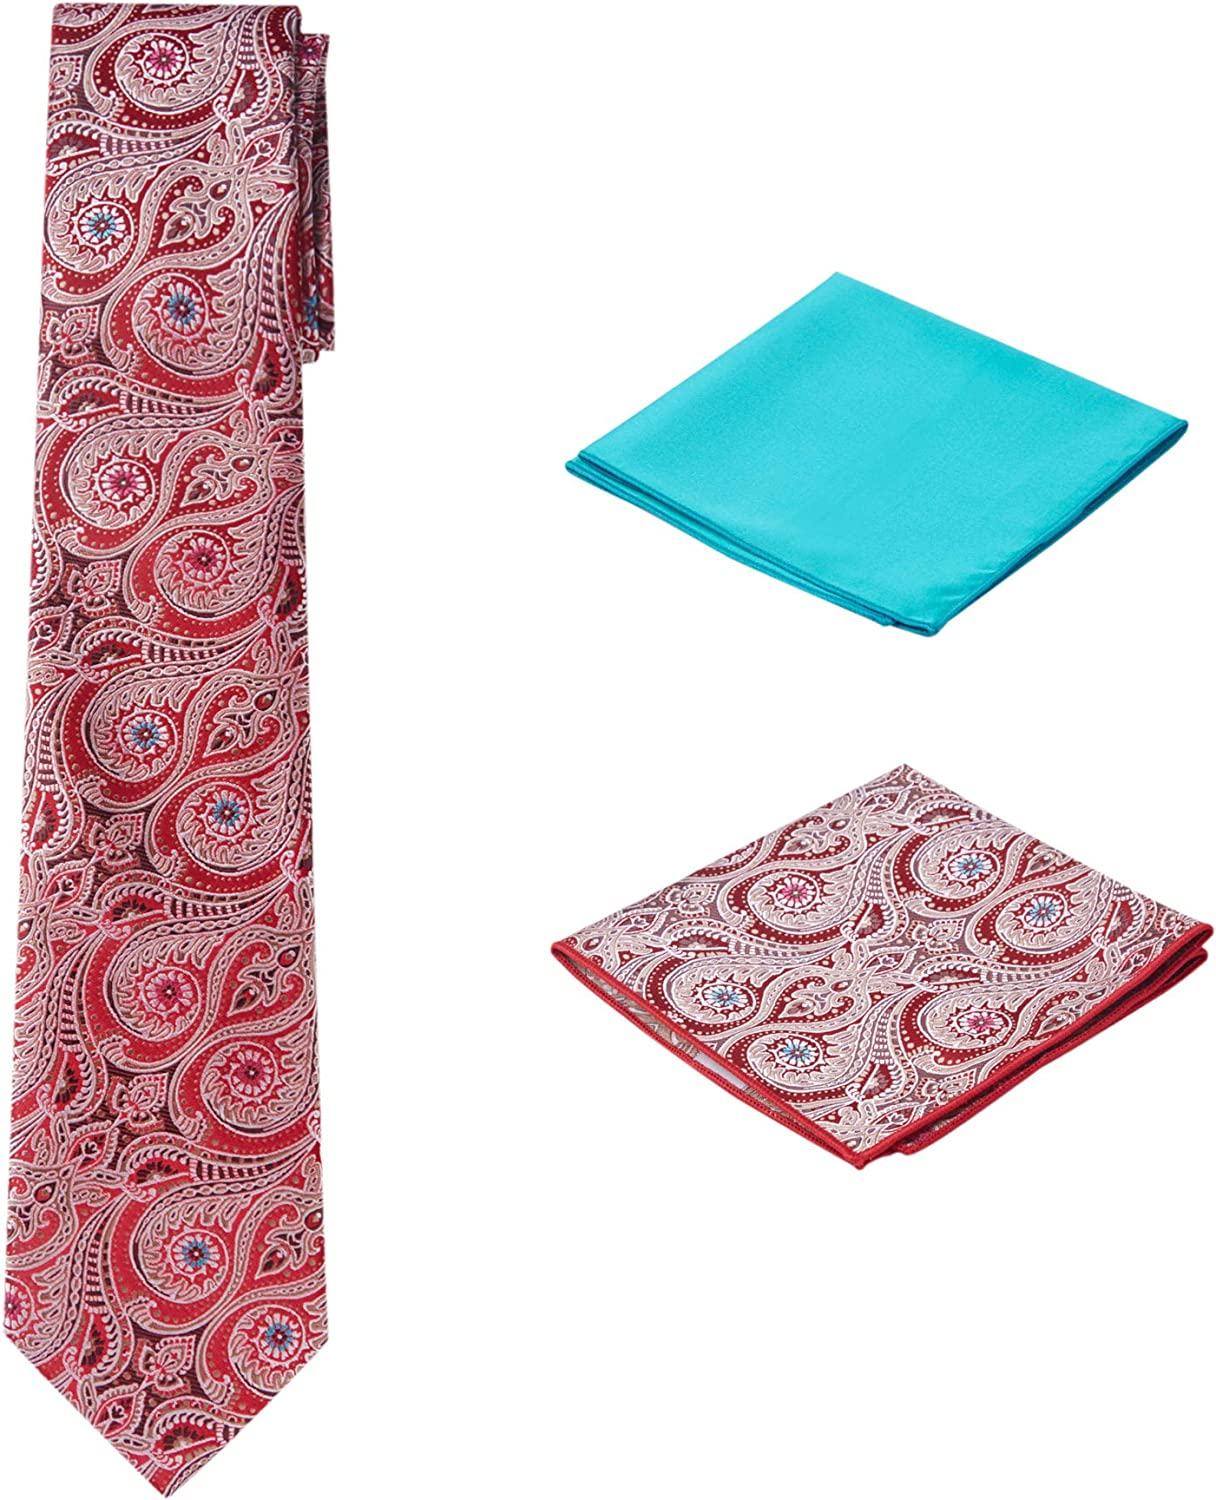 Men's Woven Paisley Regular Length Neck Tie with 2 Handkerchief Pocket Squares Hanky Set - Red Teal Blue